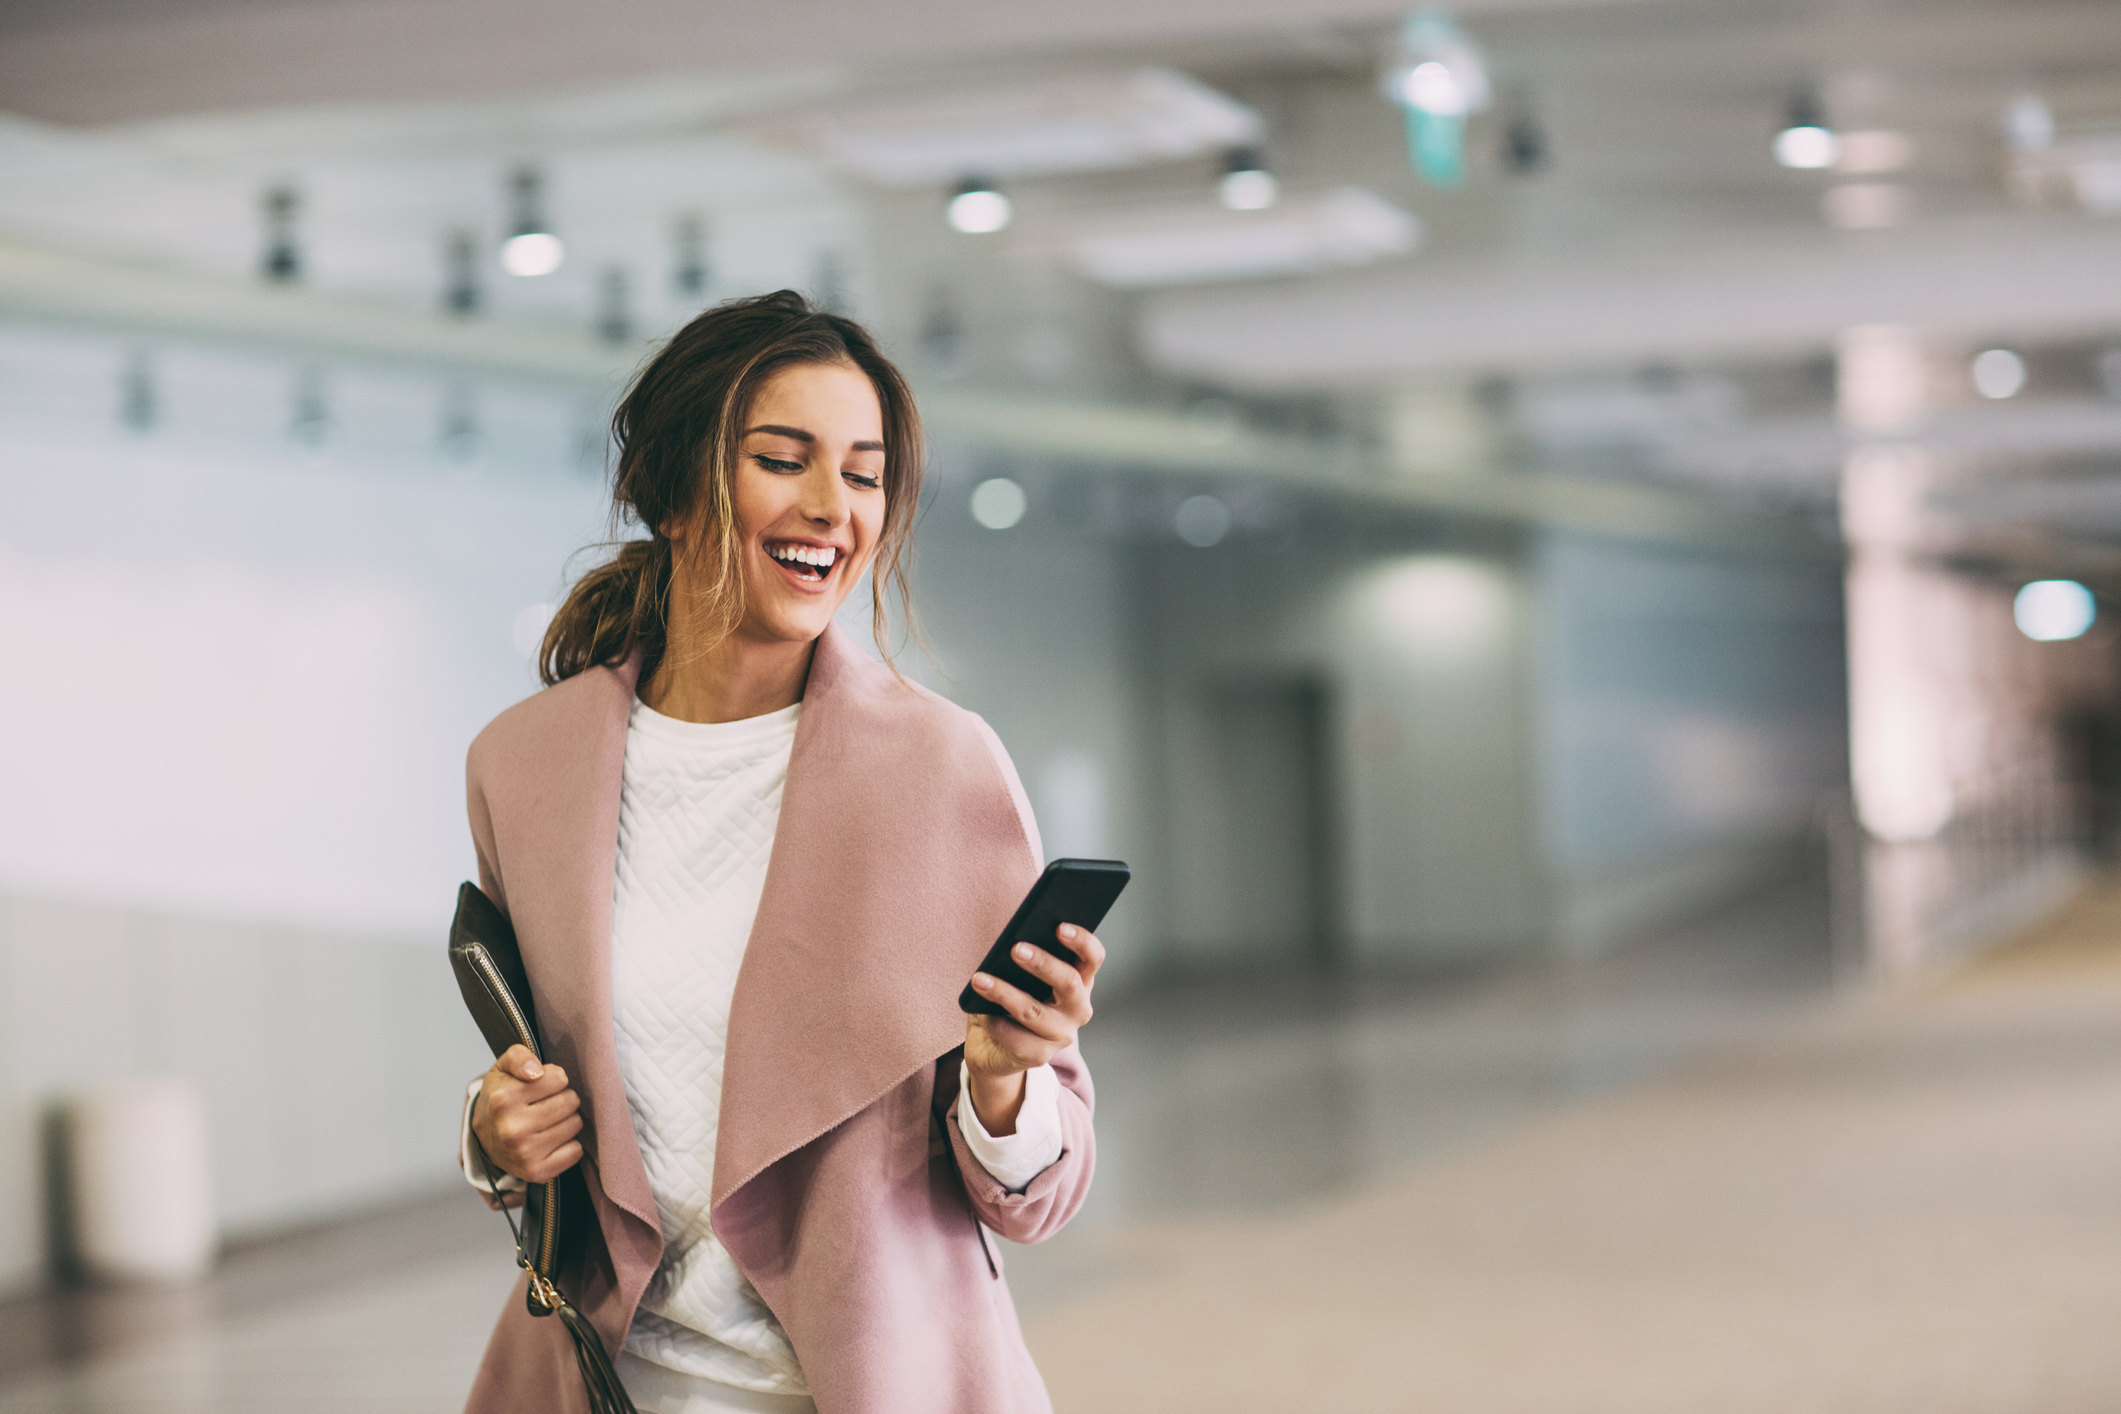 Elegant woman holding a smart phone walking in a subway parking lot, with copy space.